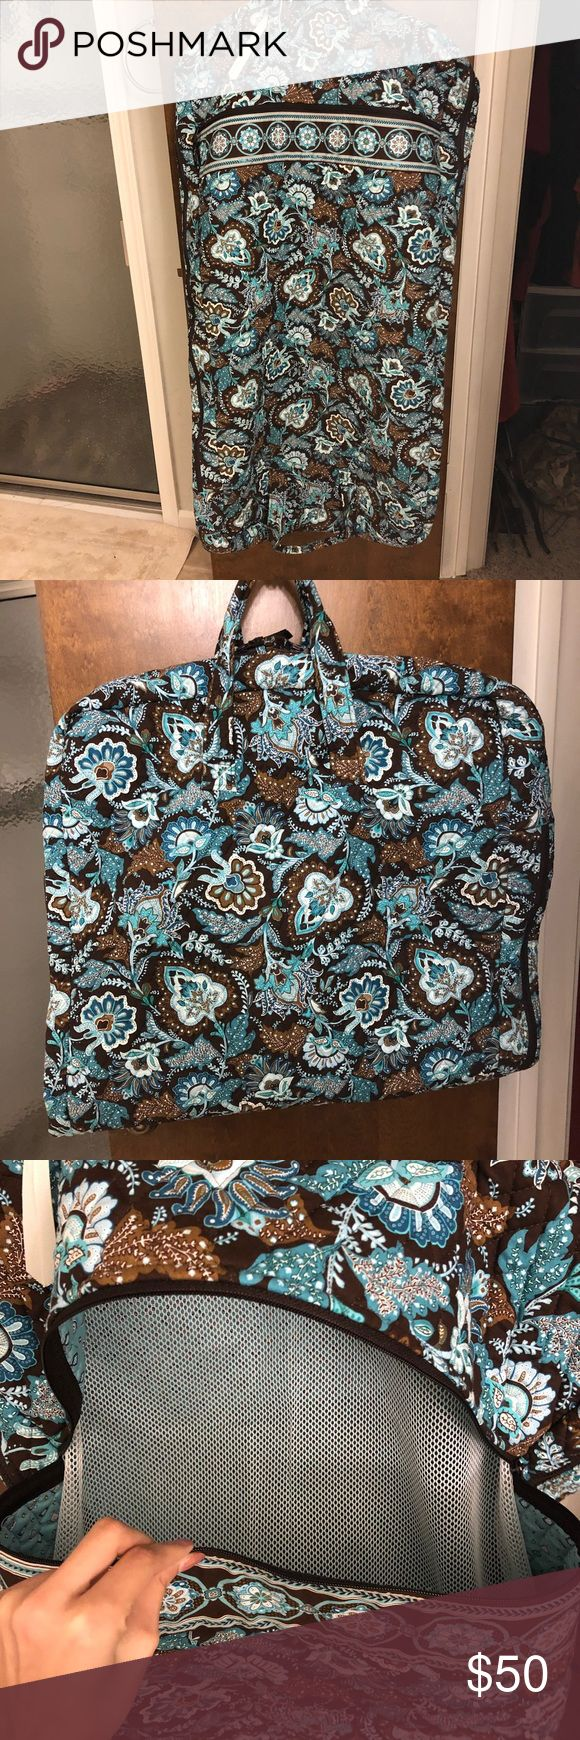 Vera Bradley Garment Bag Only used once! Perfect condition. This garment bag is very big and has one extra pocket, along with two pockets for shoes. Perfect for any kind of traveling! Vera Bradley Bags Travel Bags